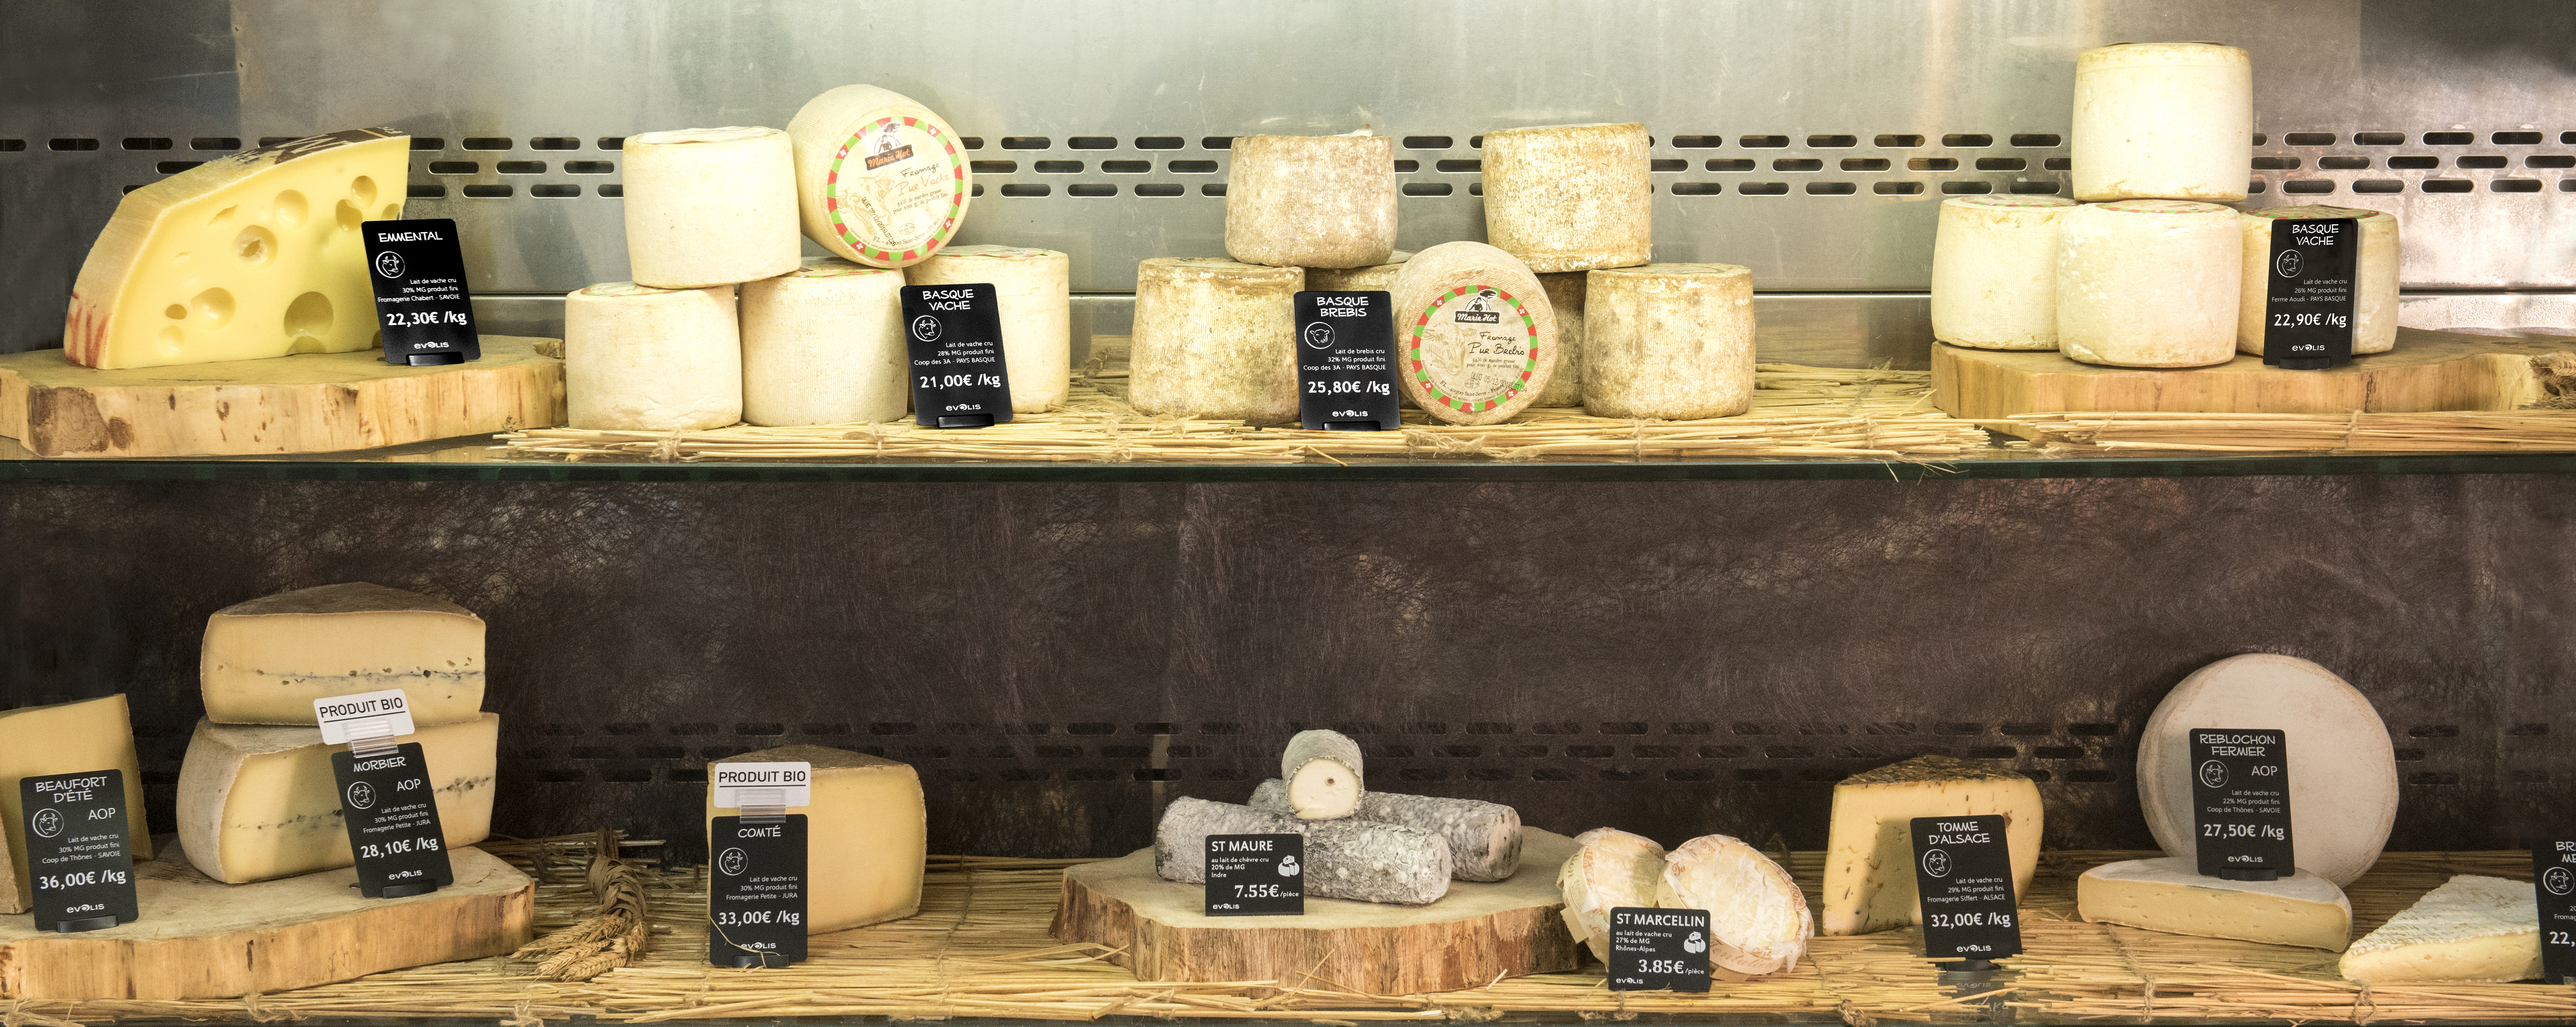 fromagerie_lahaye_0950_fre.jpg